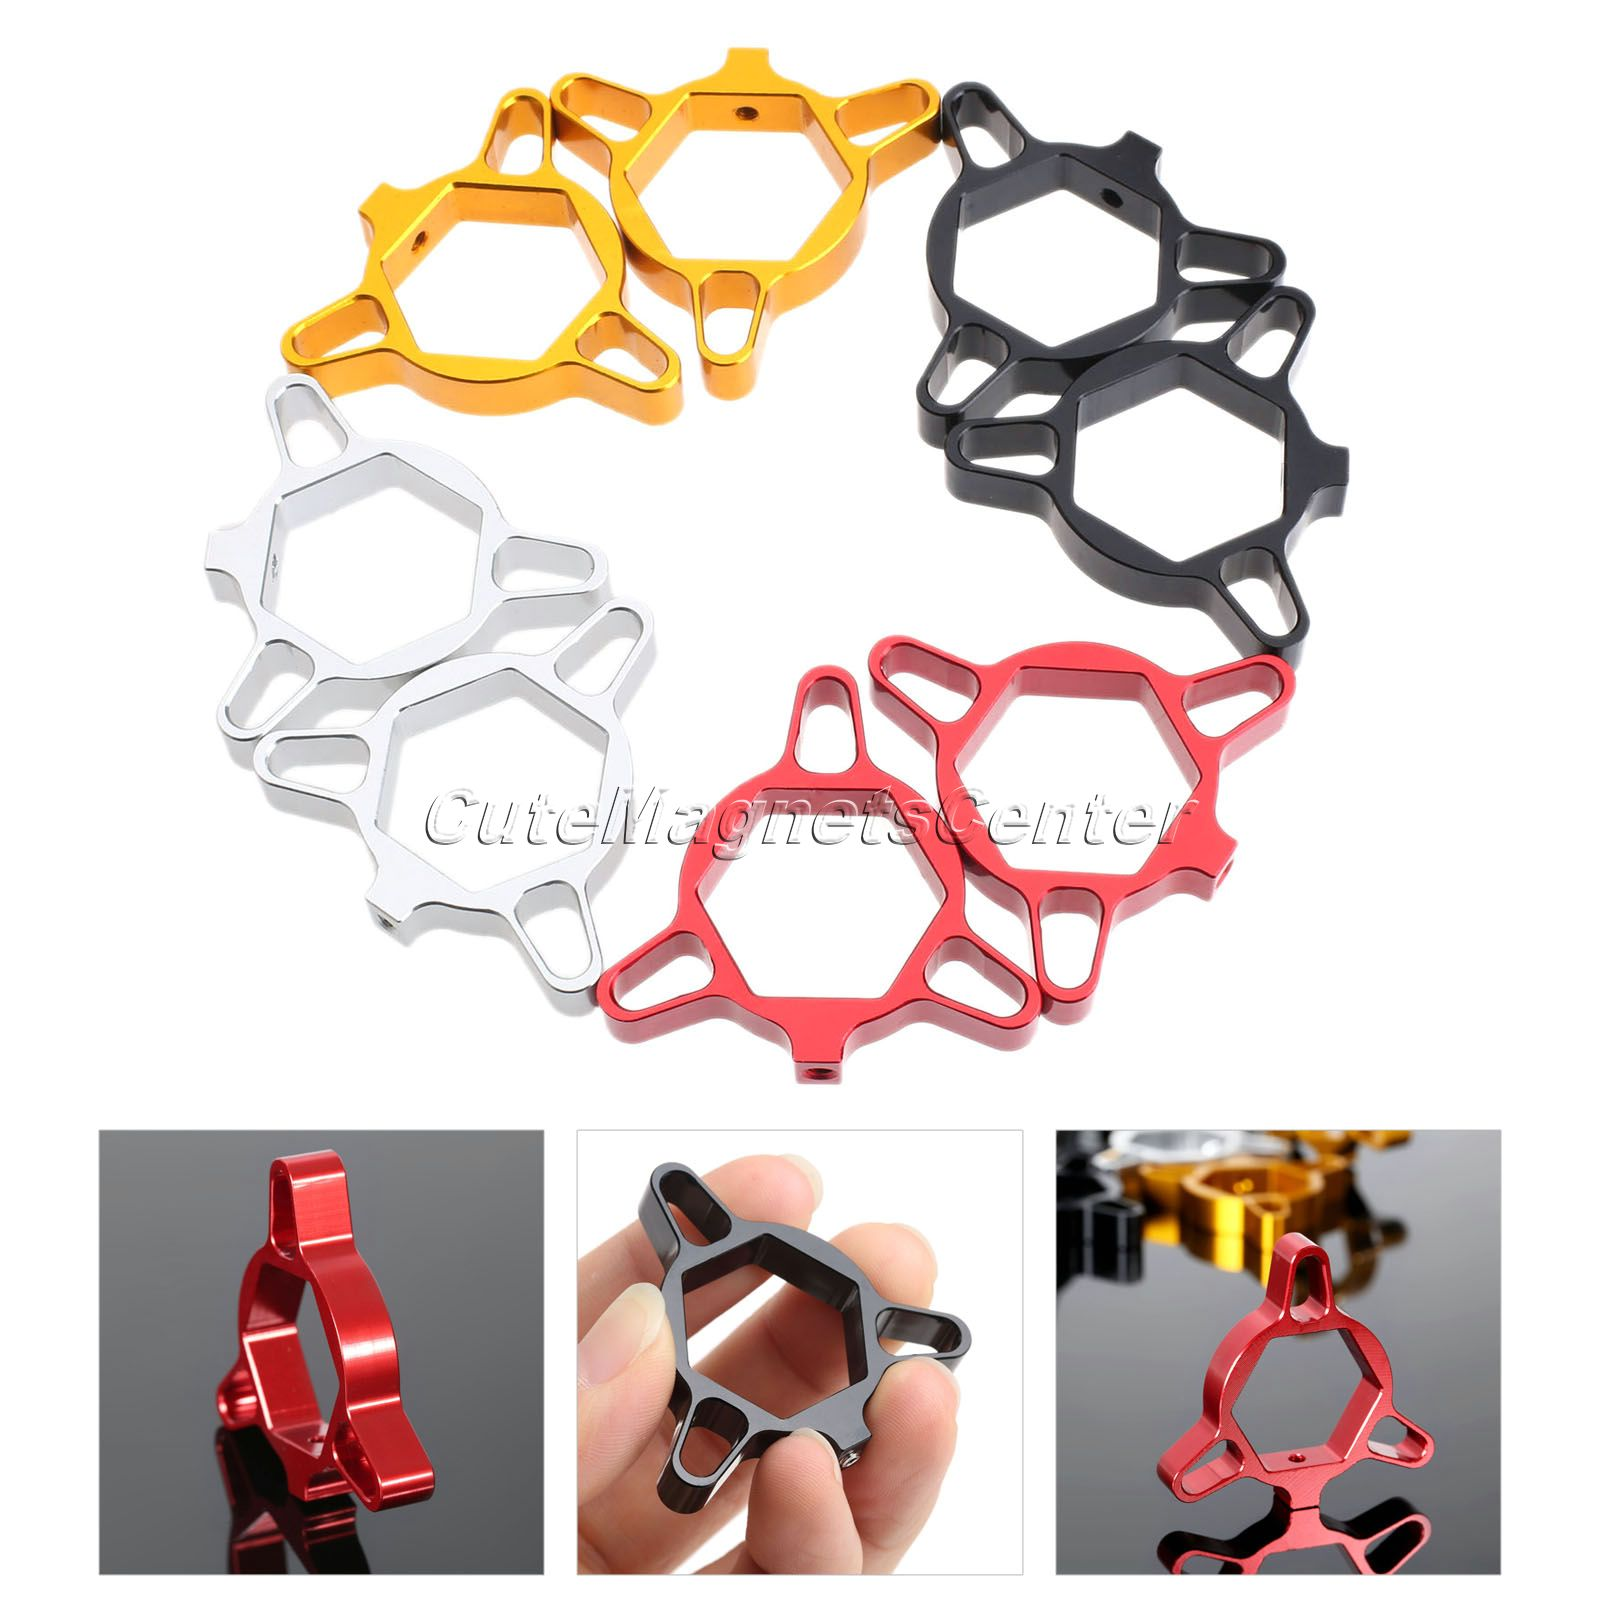 4 Colors Motorcycle 22mm CNC Aluminum Fork Preload Adjusters Universal for Honda CBR600RR Ducati KAWASAKI ZX6R Suzuki GSXR 600 d09 aluminum alloy bicycle cnc front fork washer blue white 28 6mm